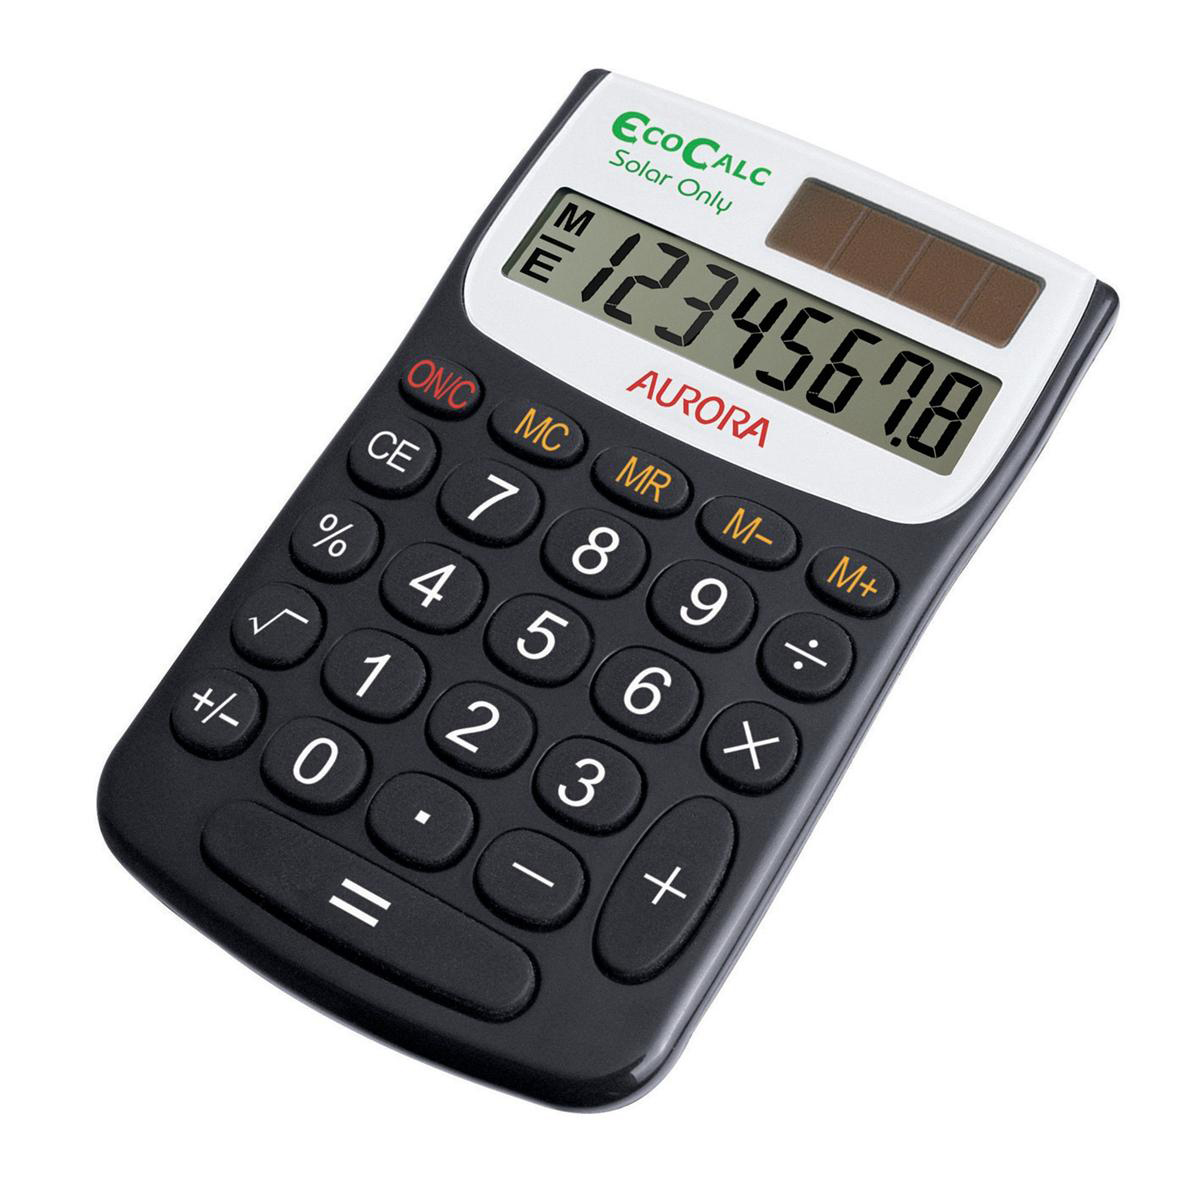 Image for Aurora EcoCalc Handheld Calculator 8 Digit 4 Key Memory Solar Power Recycled 62x9x102mm Black Ref EC101